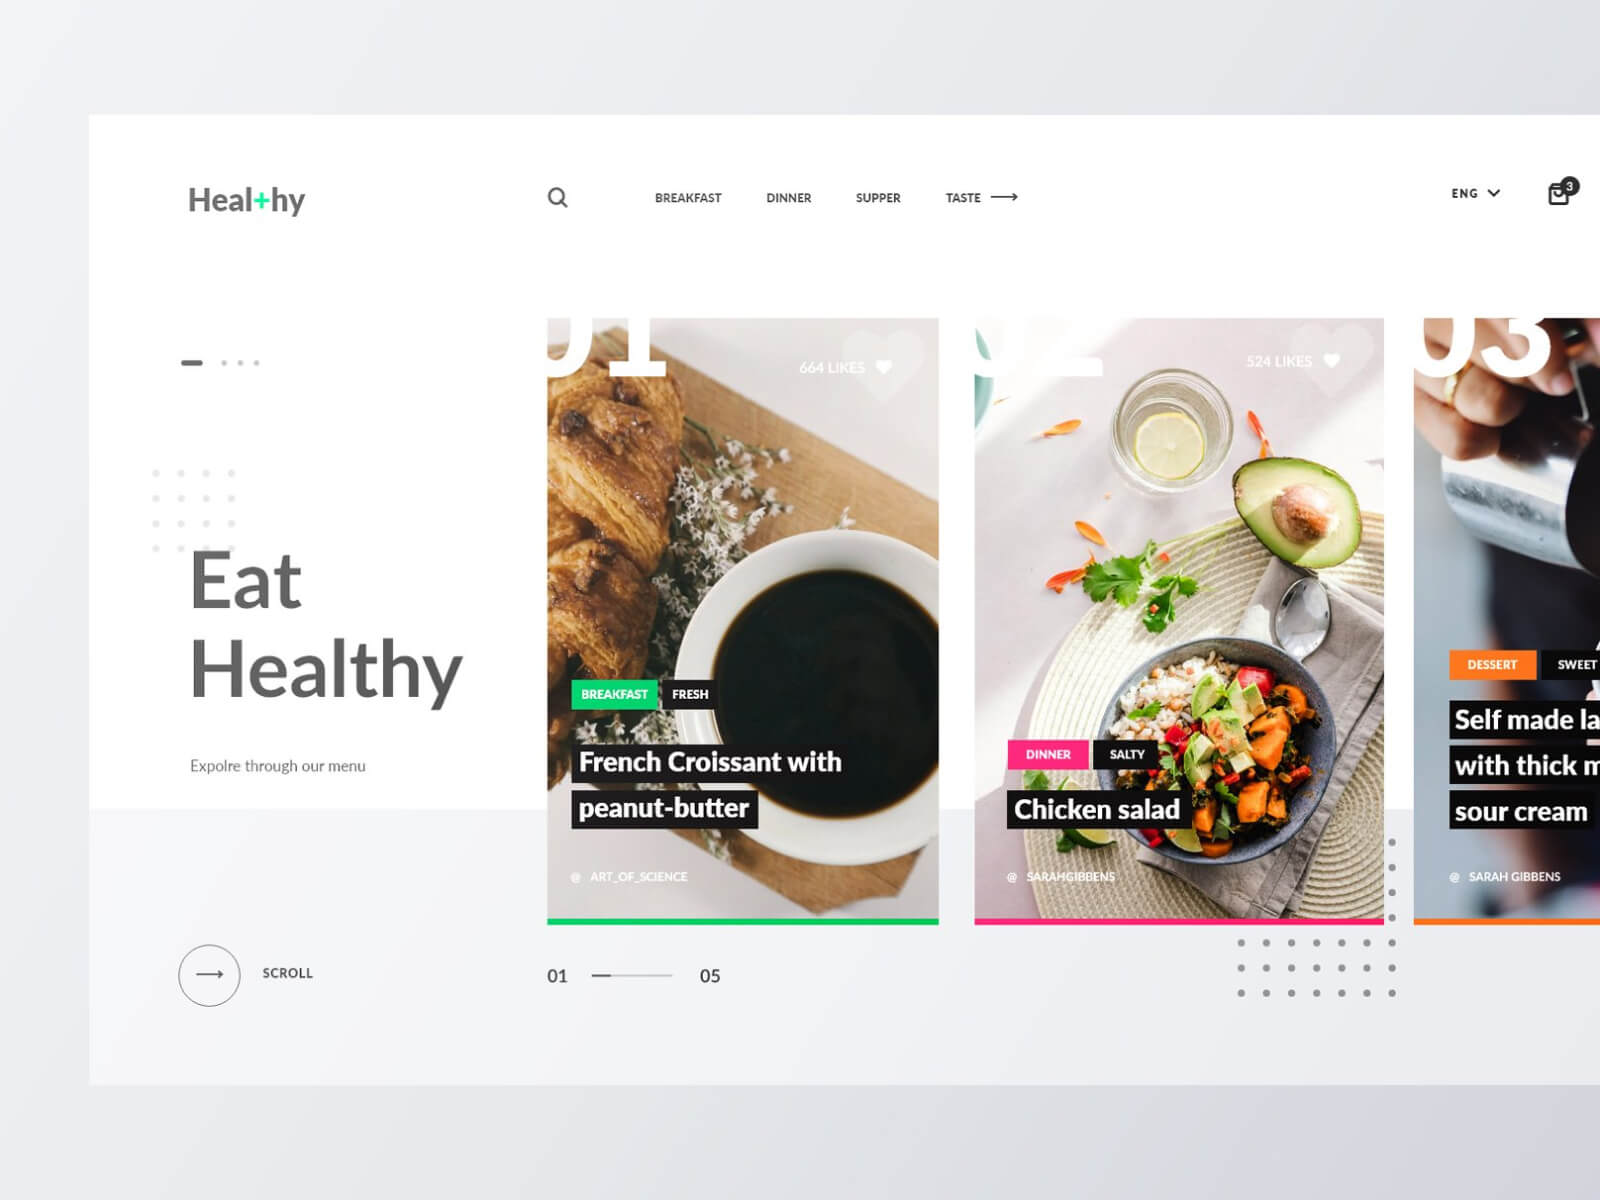 Heal+h Food Blog Concept cover image